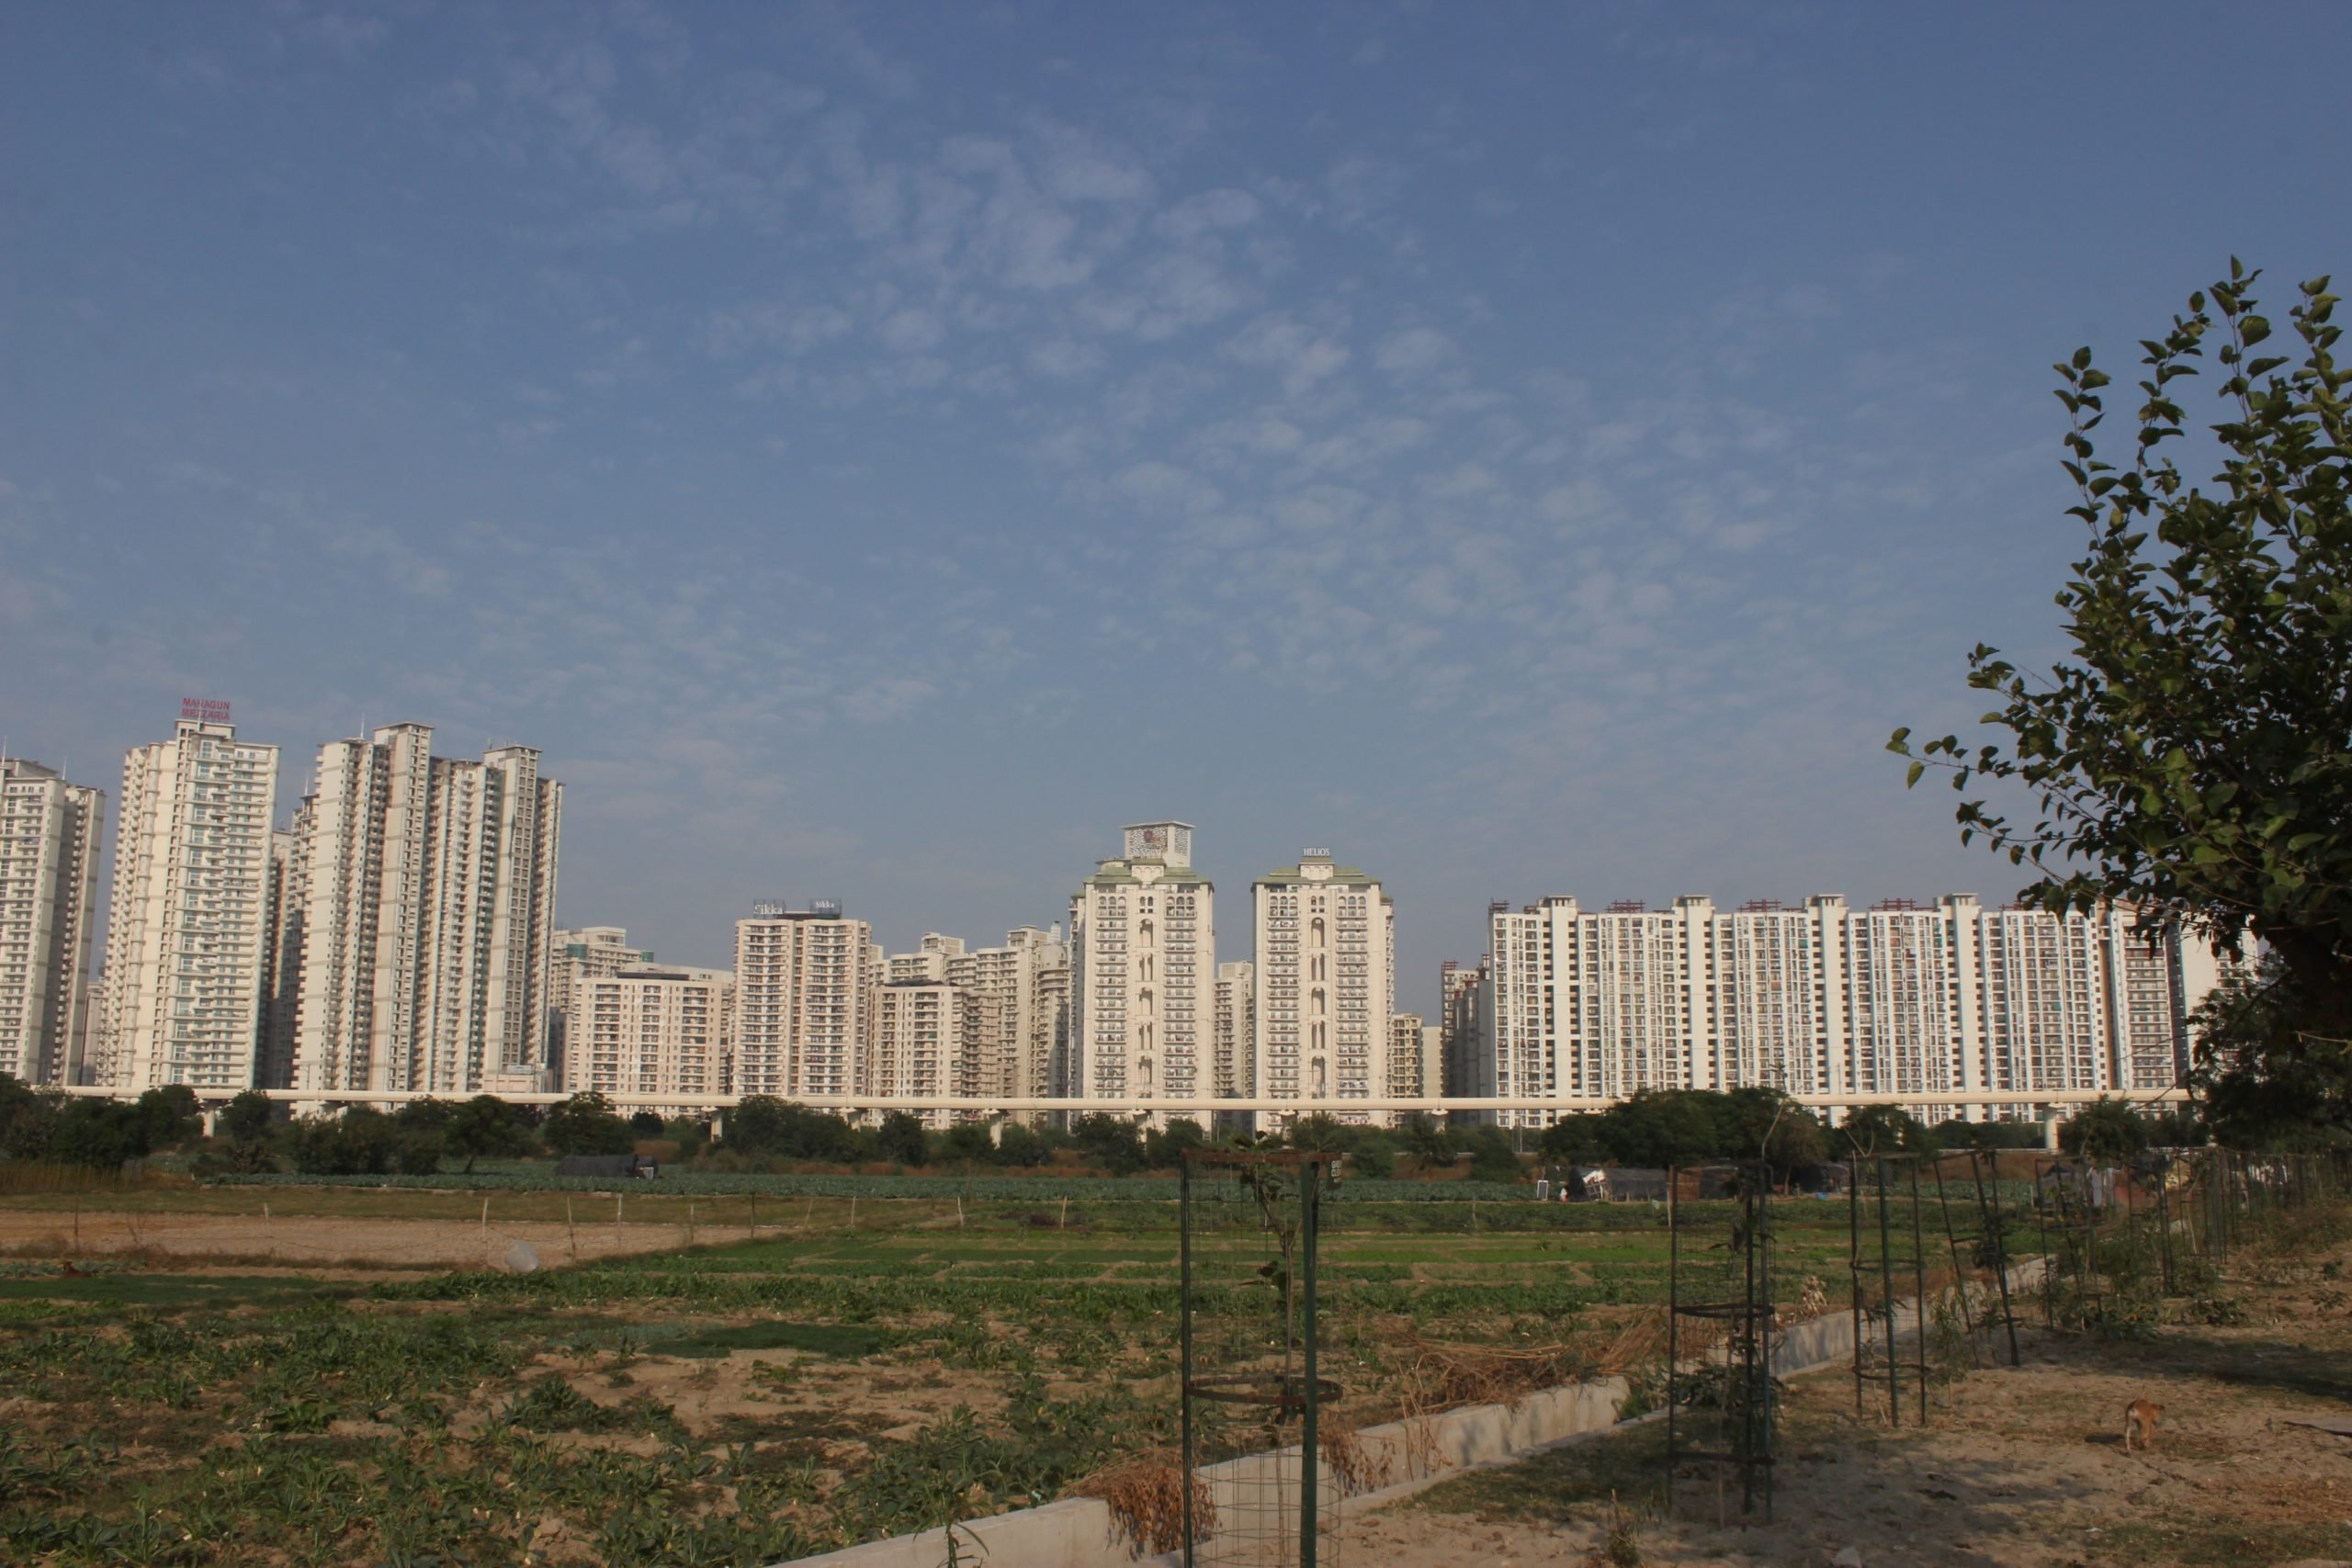 Tall buildings of Noida city